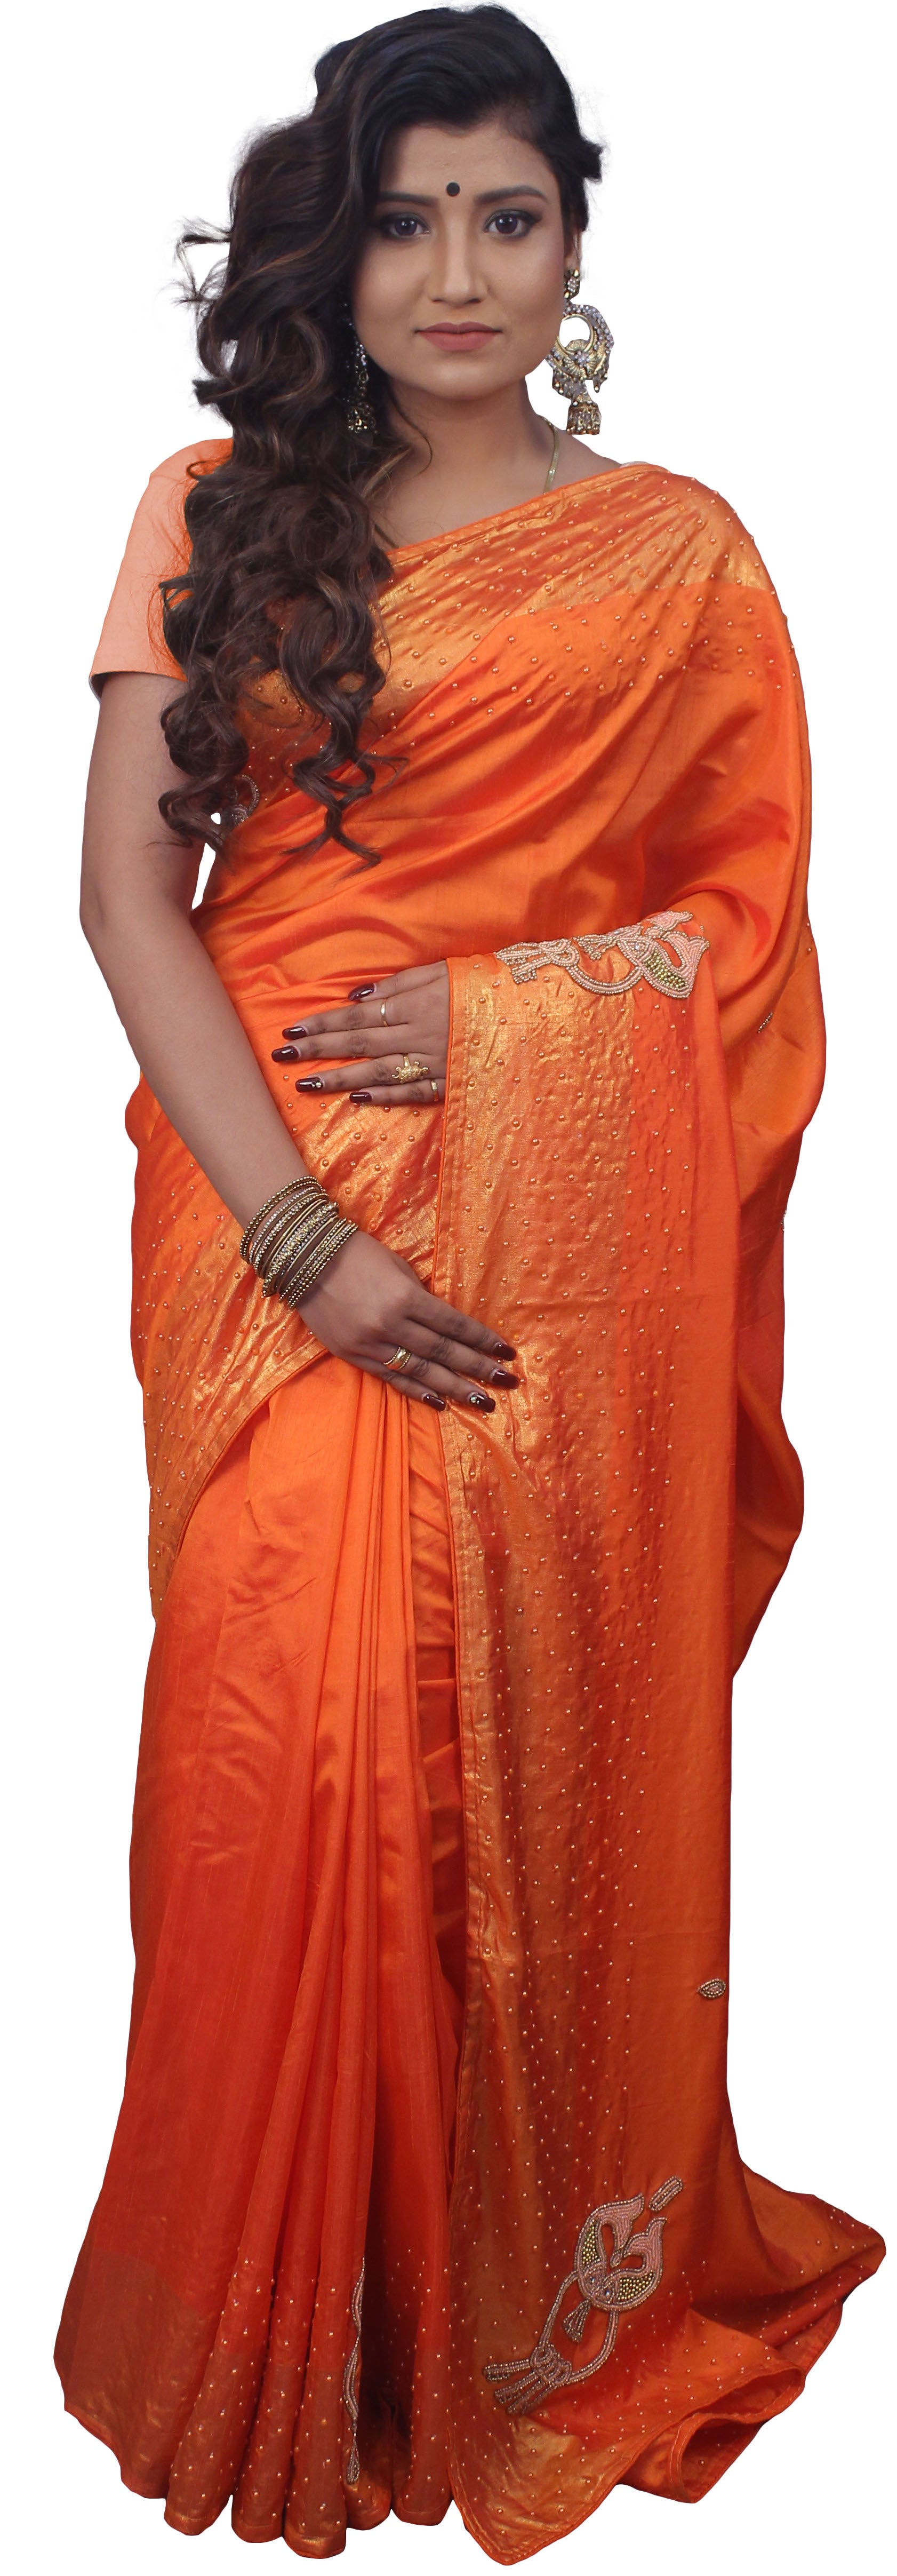 SMSAREE Orange Designer Wedding Partywear Silk Beads & Pearl Hand Embroidery Work Bridal Saree Sari With Blouse Piece E725